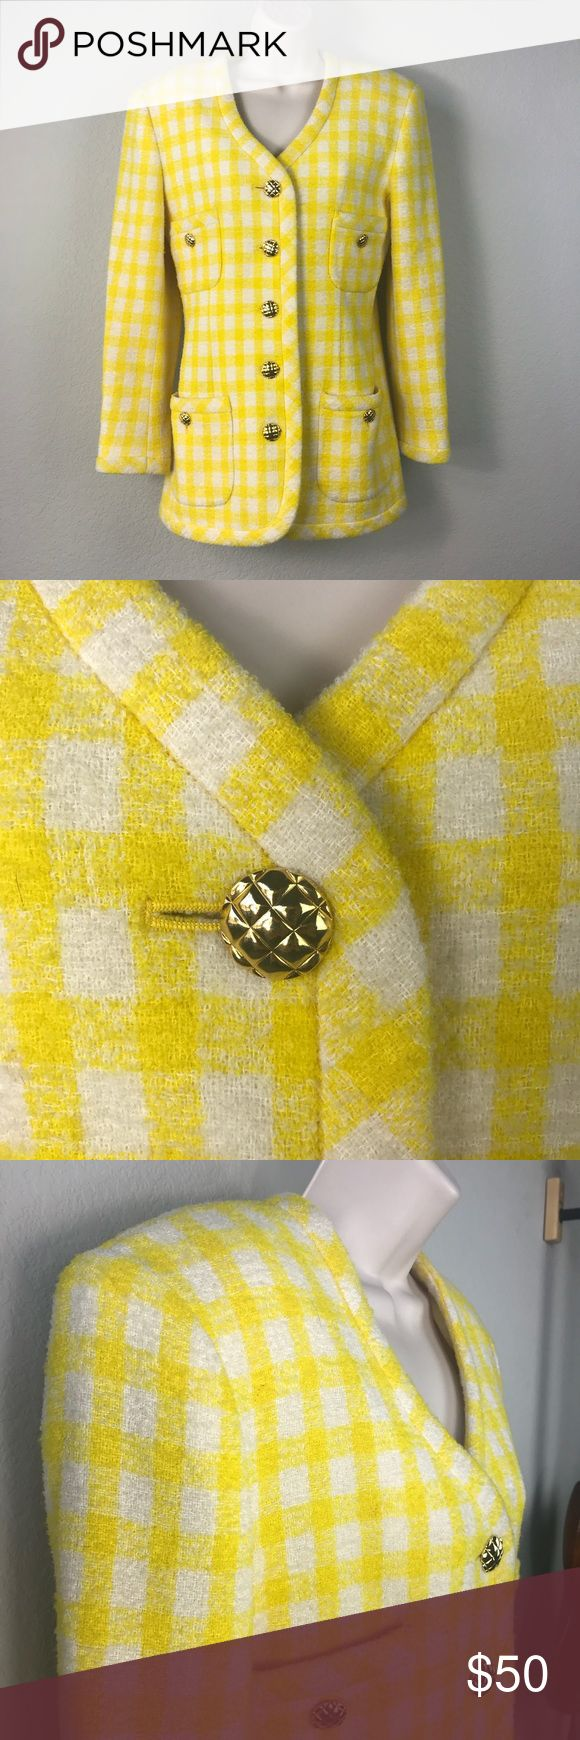 Classiques yellow plaid Chanel style jacket Japan Nordstrom line Classiques yellow and white plaid Chanel wool tweed like jacket in a squishy thick texture with great gold buttons. Classic Chanel styling on this high quality Made in Japan coat make this a total standout on a dreary winter day. Great condition, wear with a pencil skirt when you are serious and some ripped up jeans when you aren't. Nordstrom Jackets & Coats